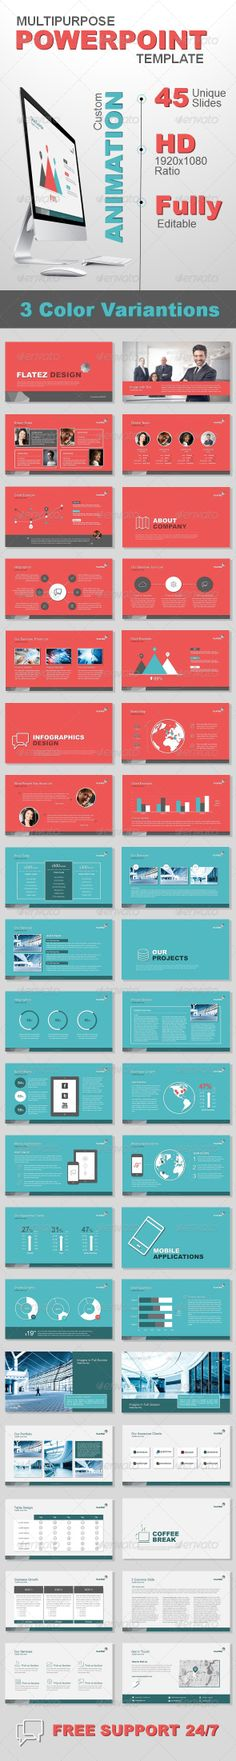 Rework PowerPoint Presentation Template Powerpoint presentation - business case templates free